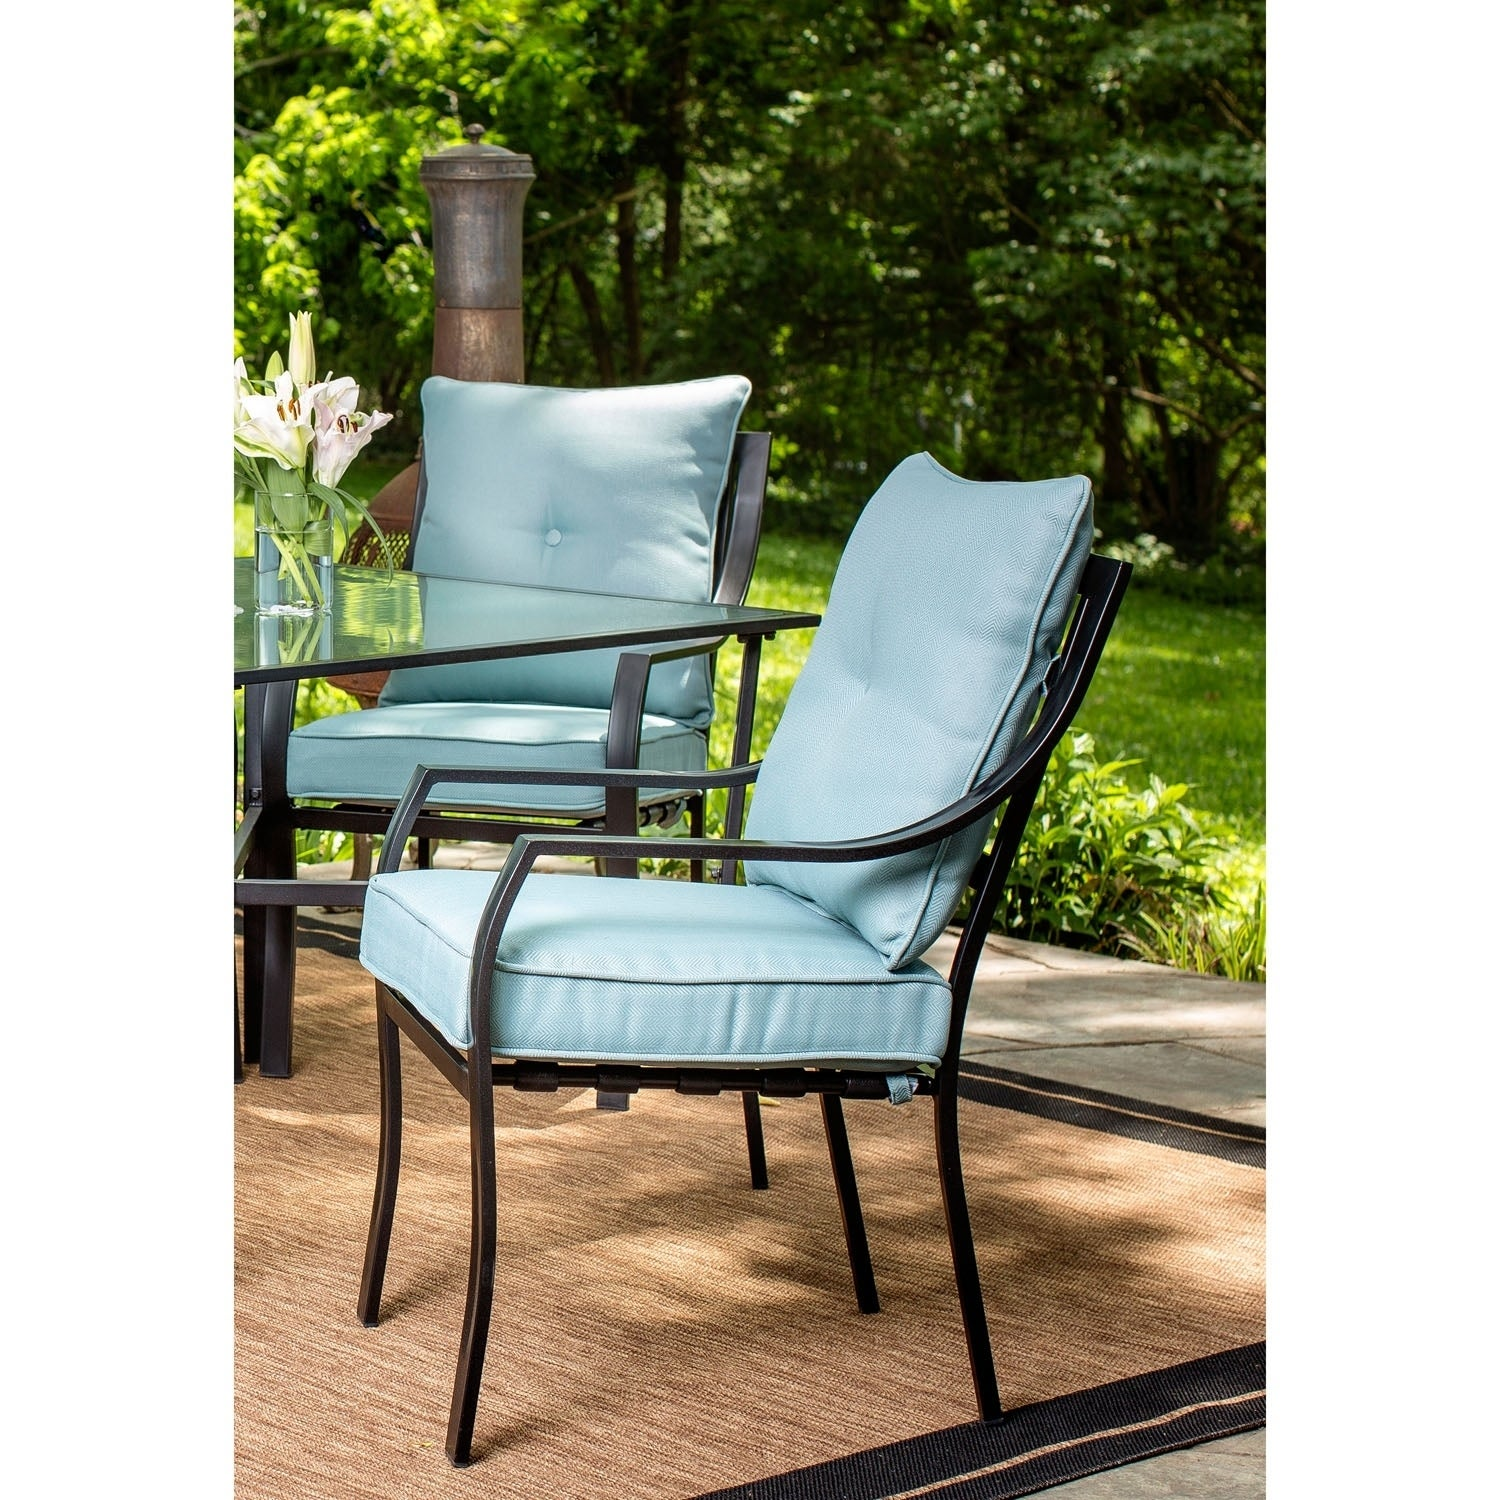 9b2b466f587 Shop Hanover Lavallette 7-Piece Outdoor Dining Set in Ocean Blue - Free  Shipping Today - Overstock - 15963947